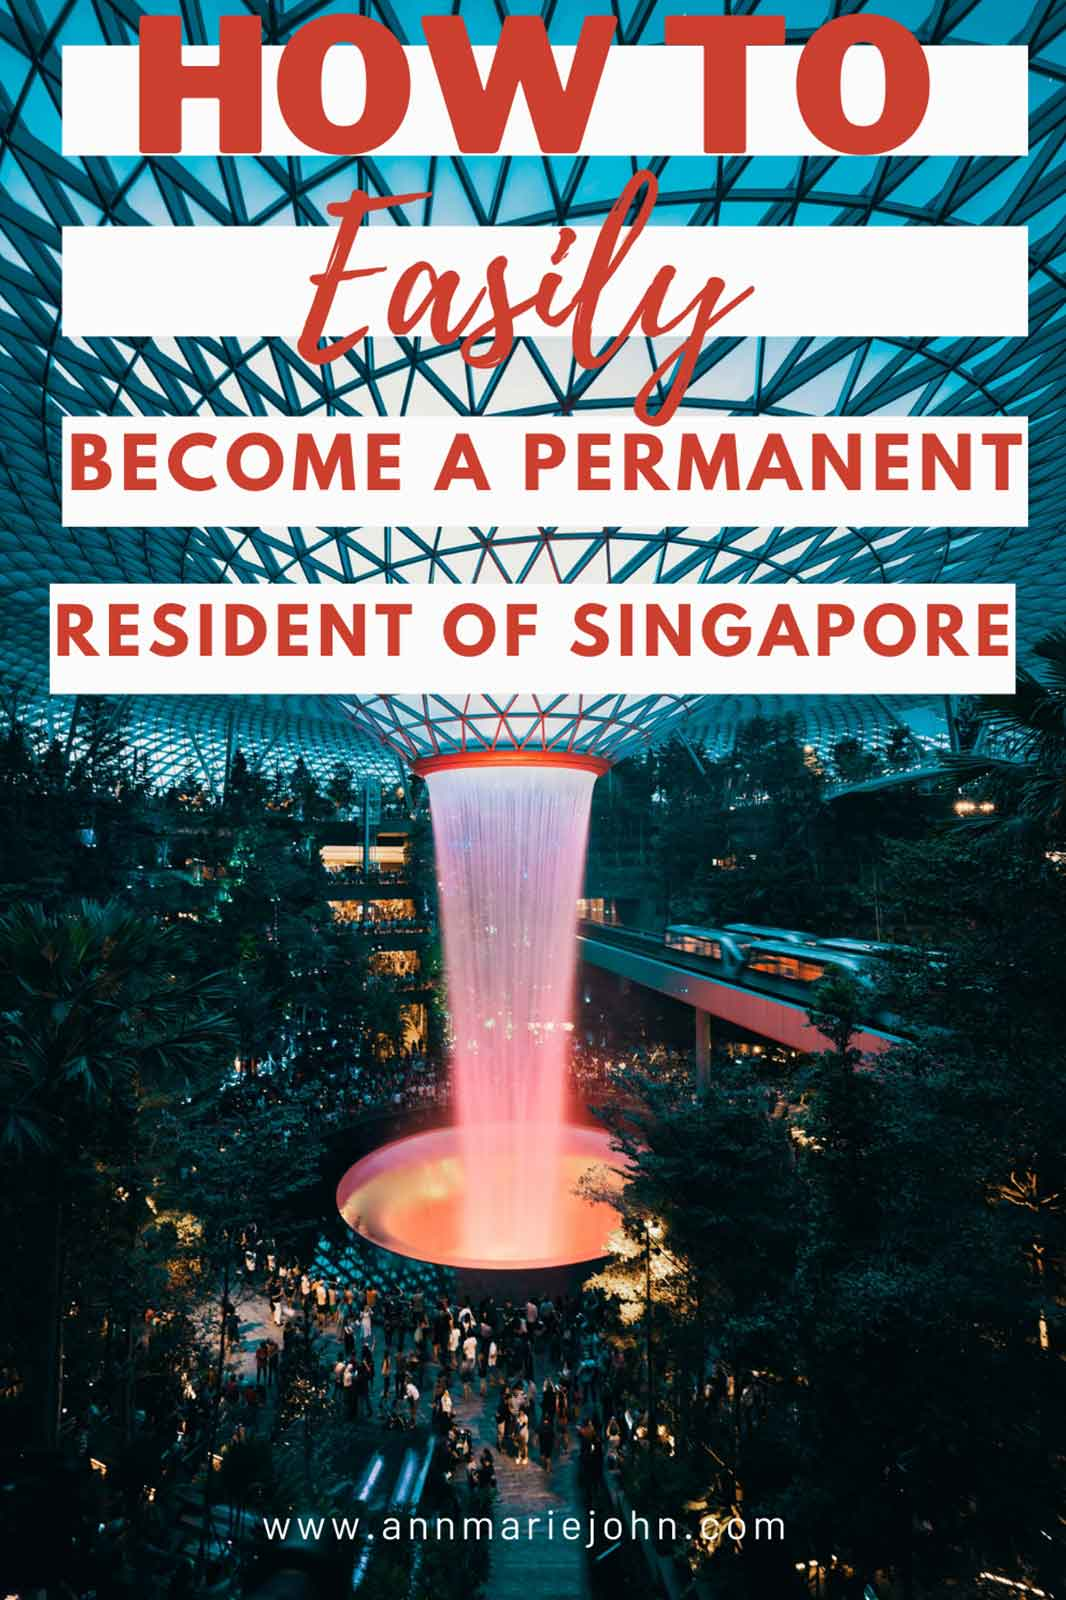 How to Easily Become a Permanent Resident of Singapore